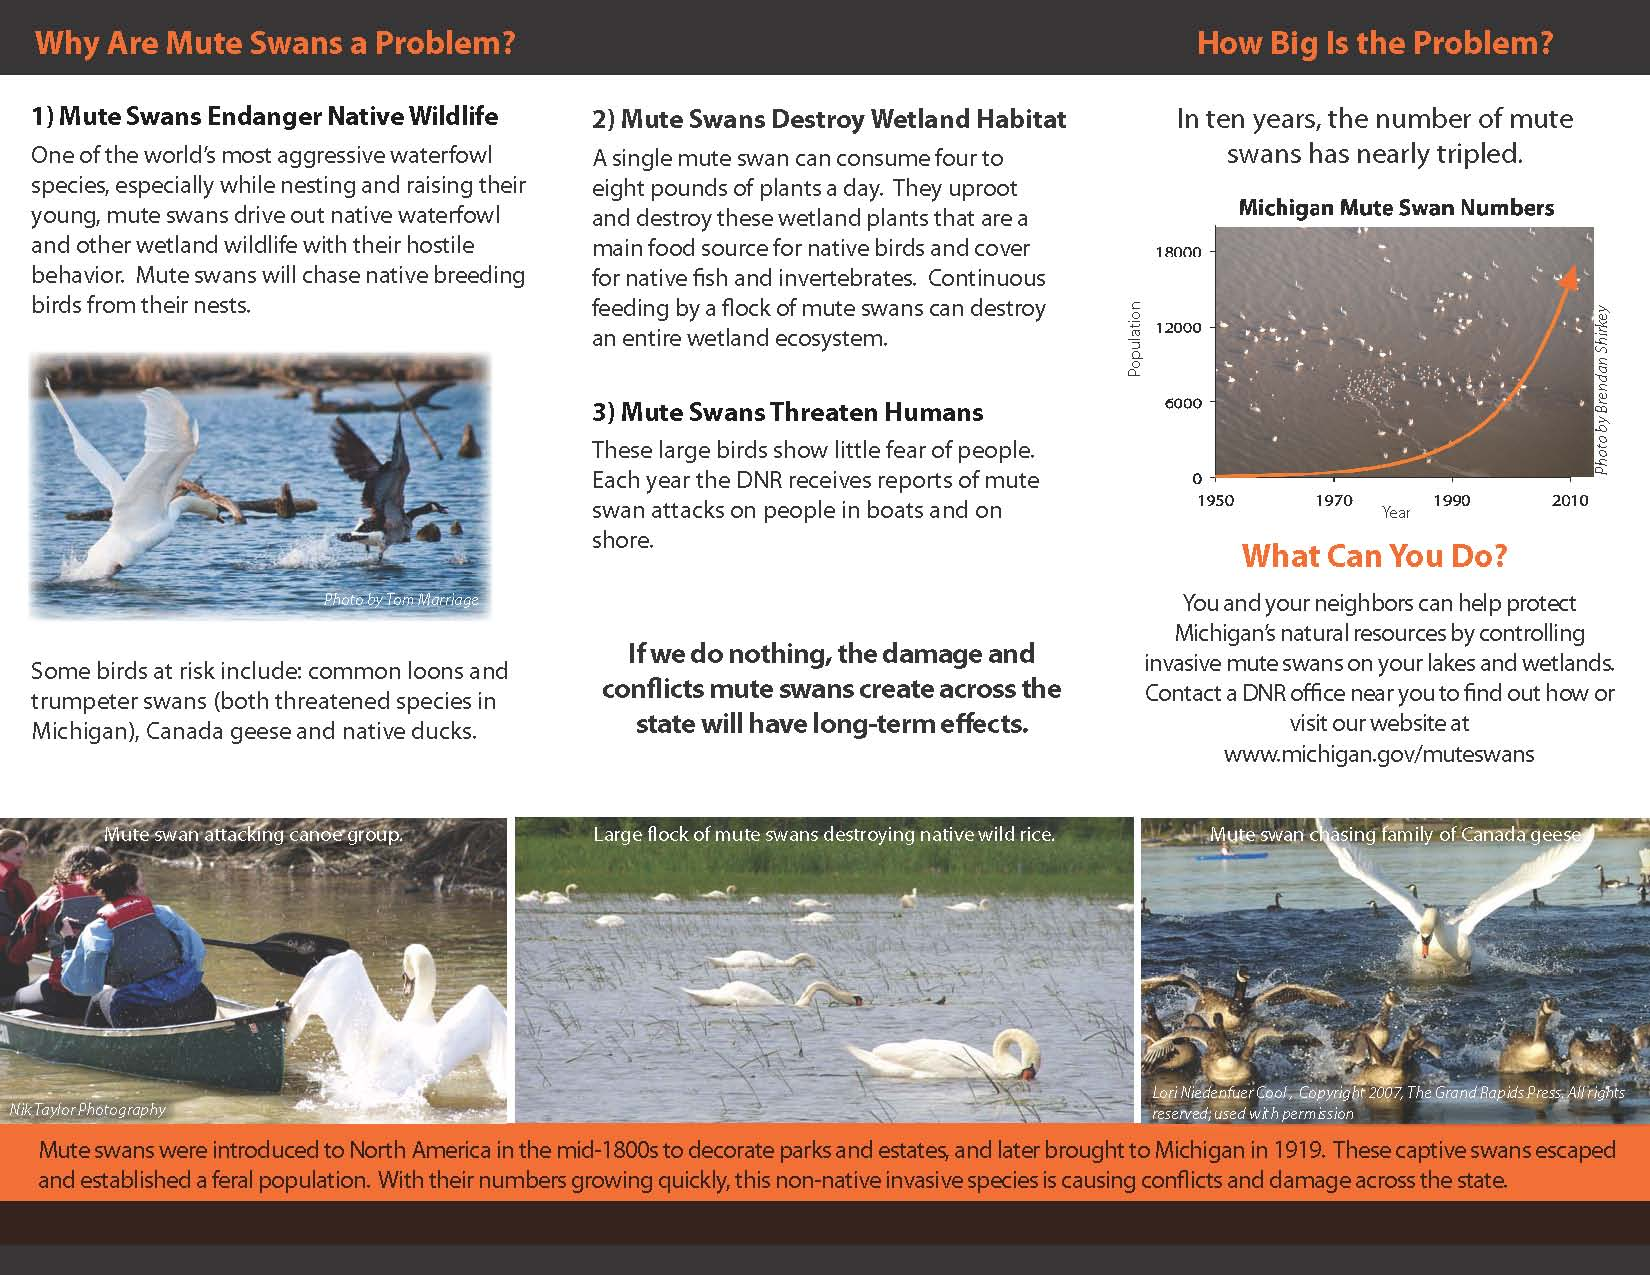 Why Are Mute Swans a Problem?